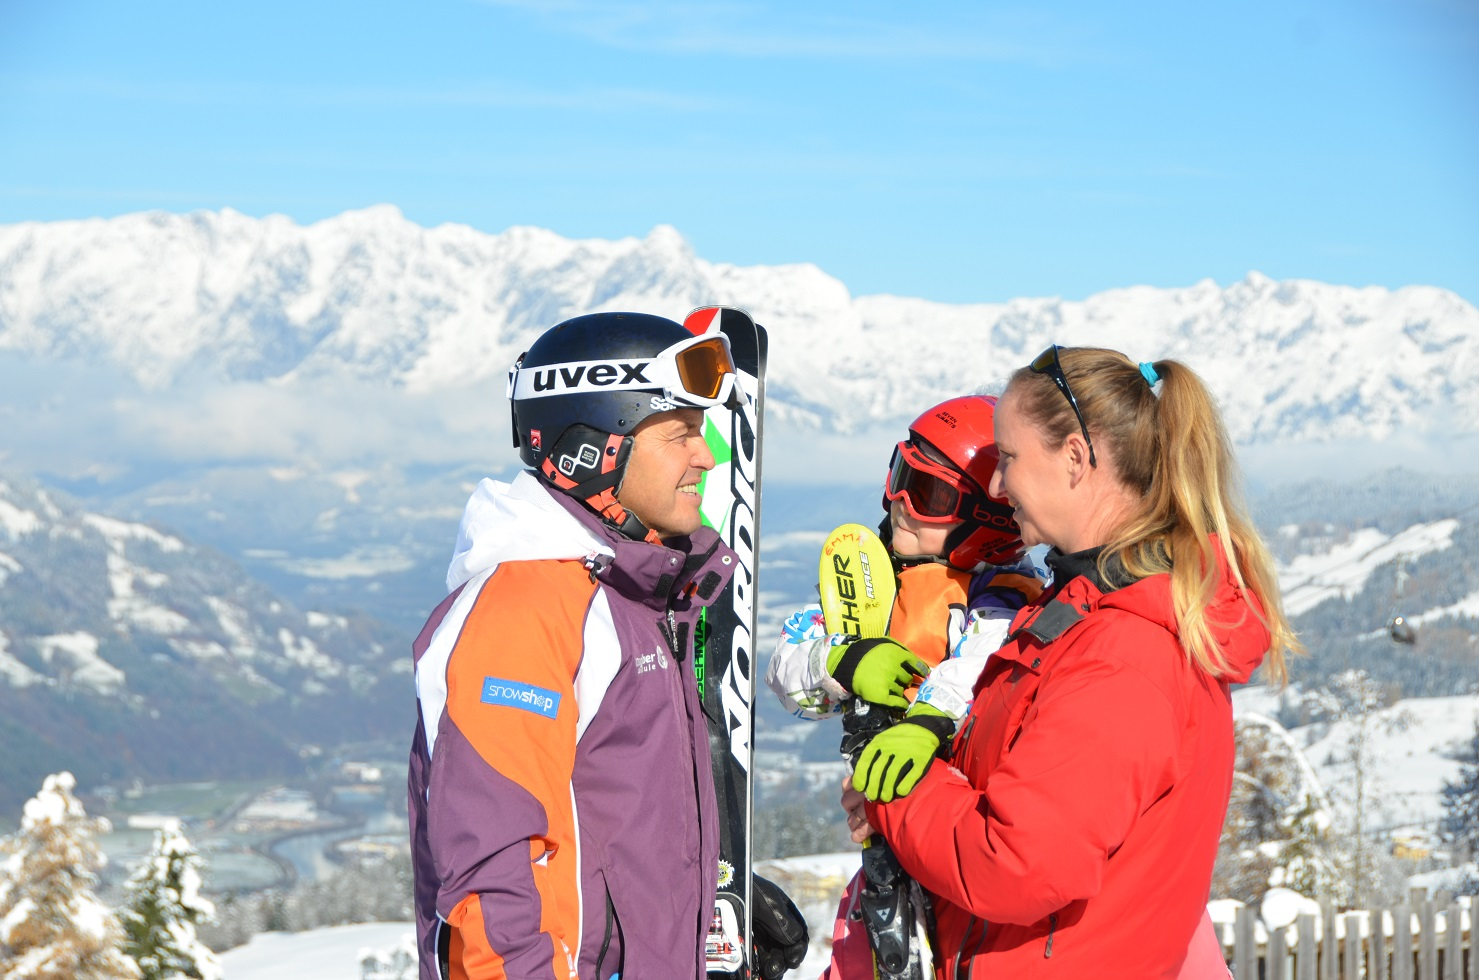 skischule-st--johann-alpendorf----------we-are-family